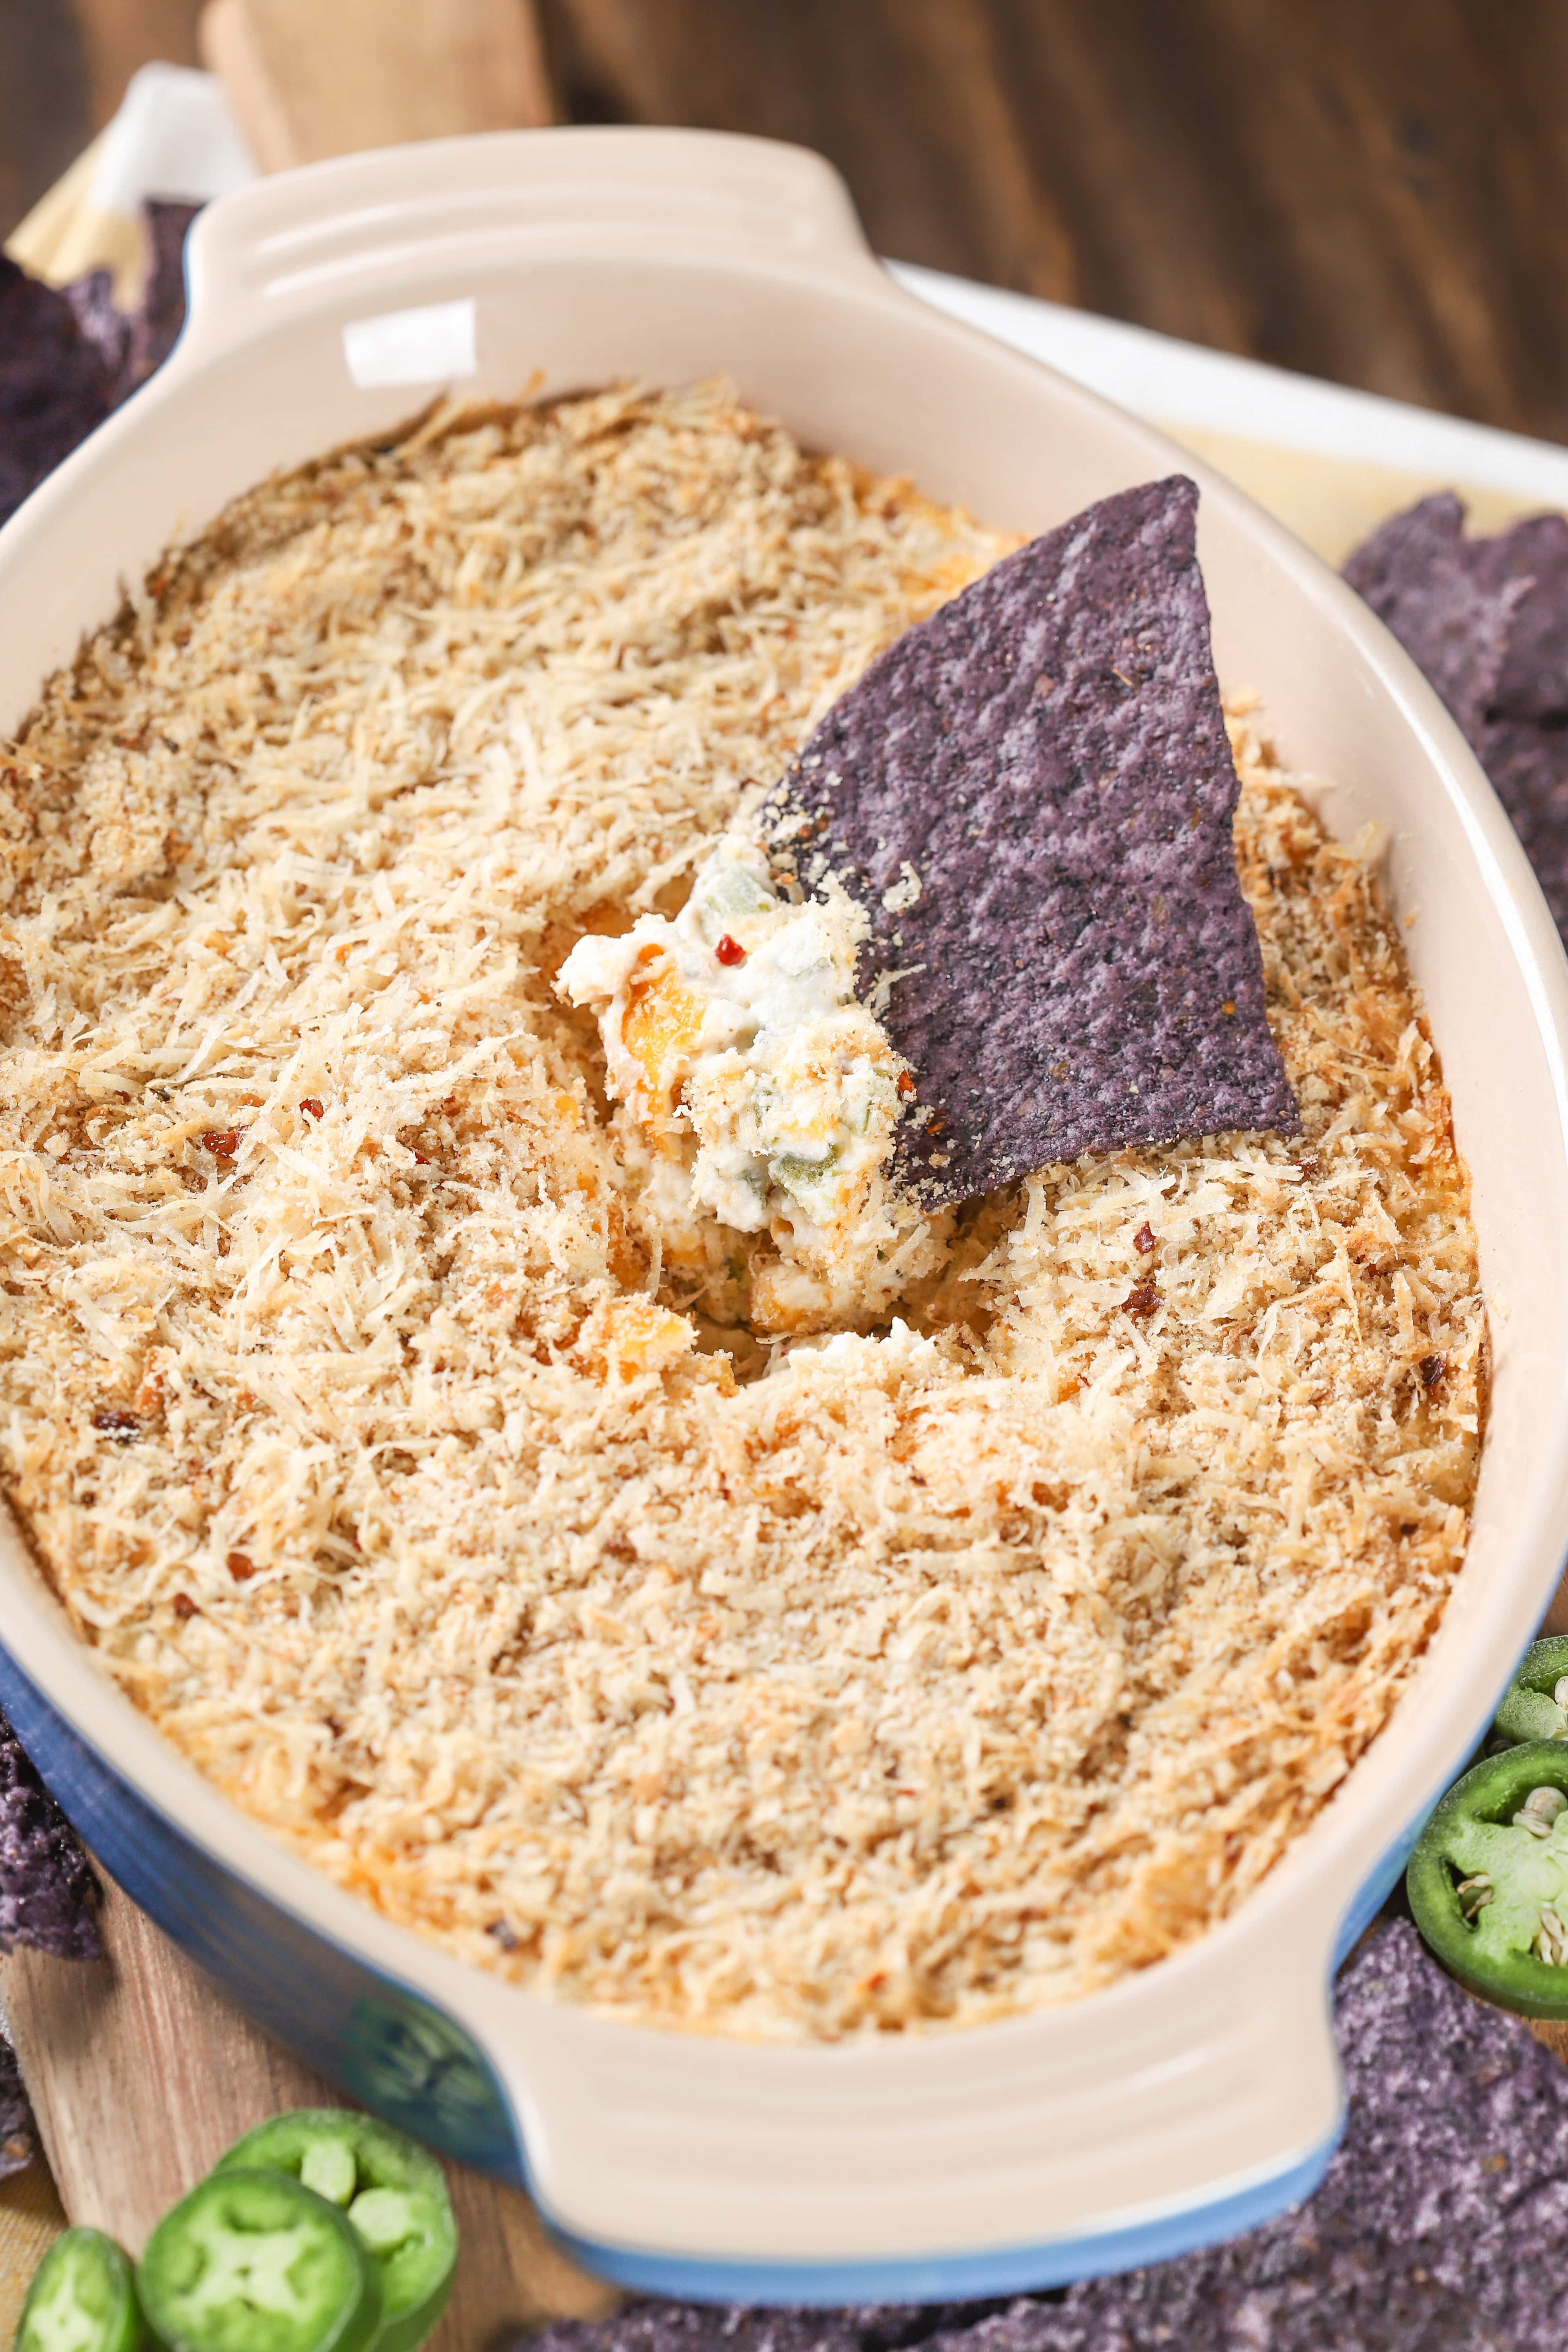 Jalapeno Popper Dip made in the oven or microwave